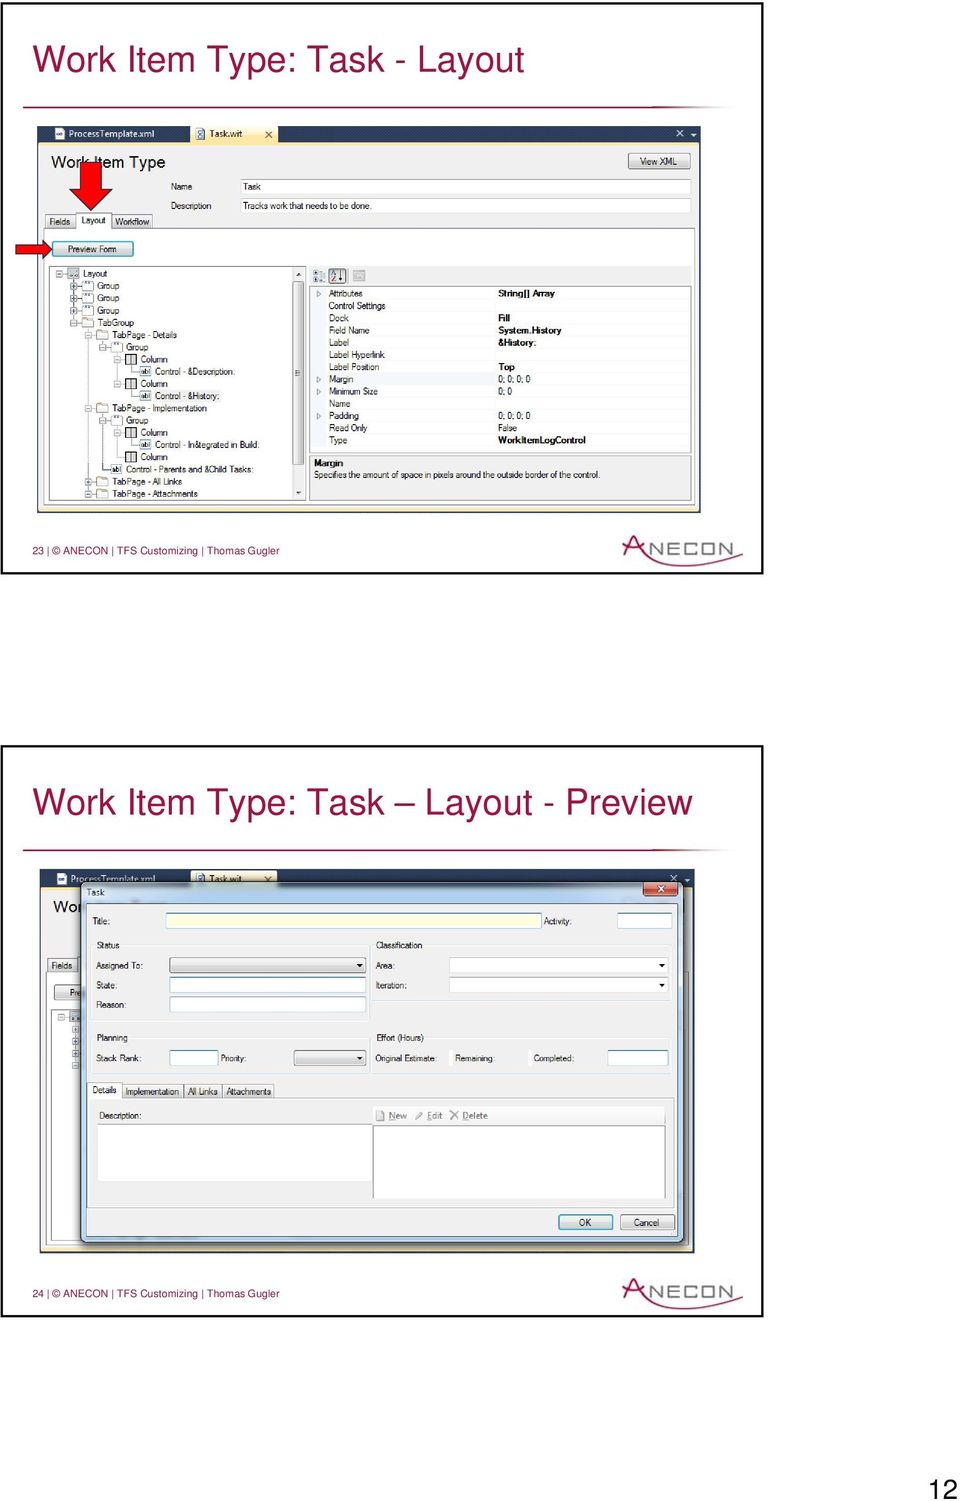 Work Item Type: Task Layout - Preview